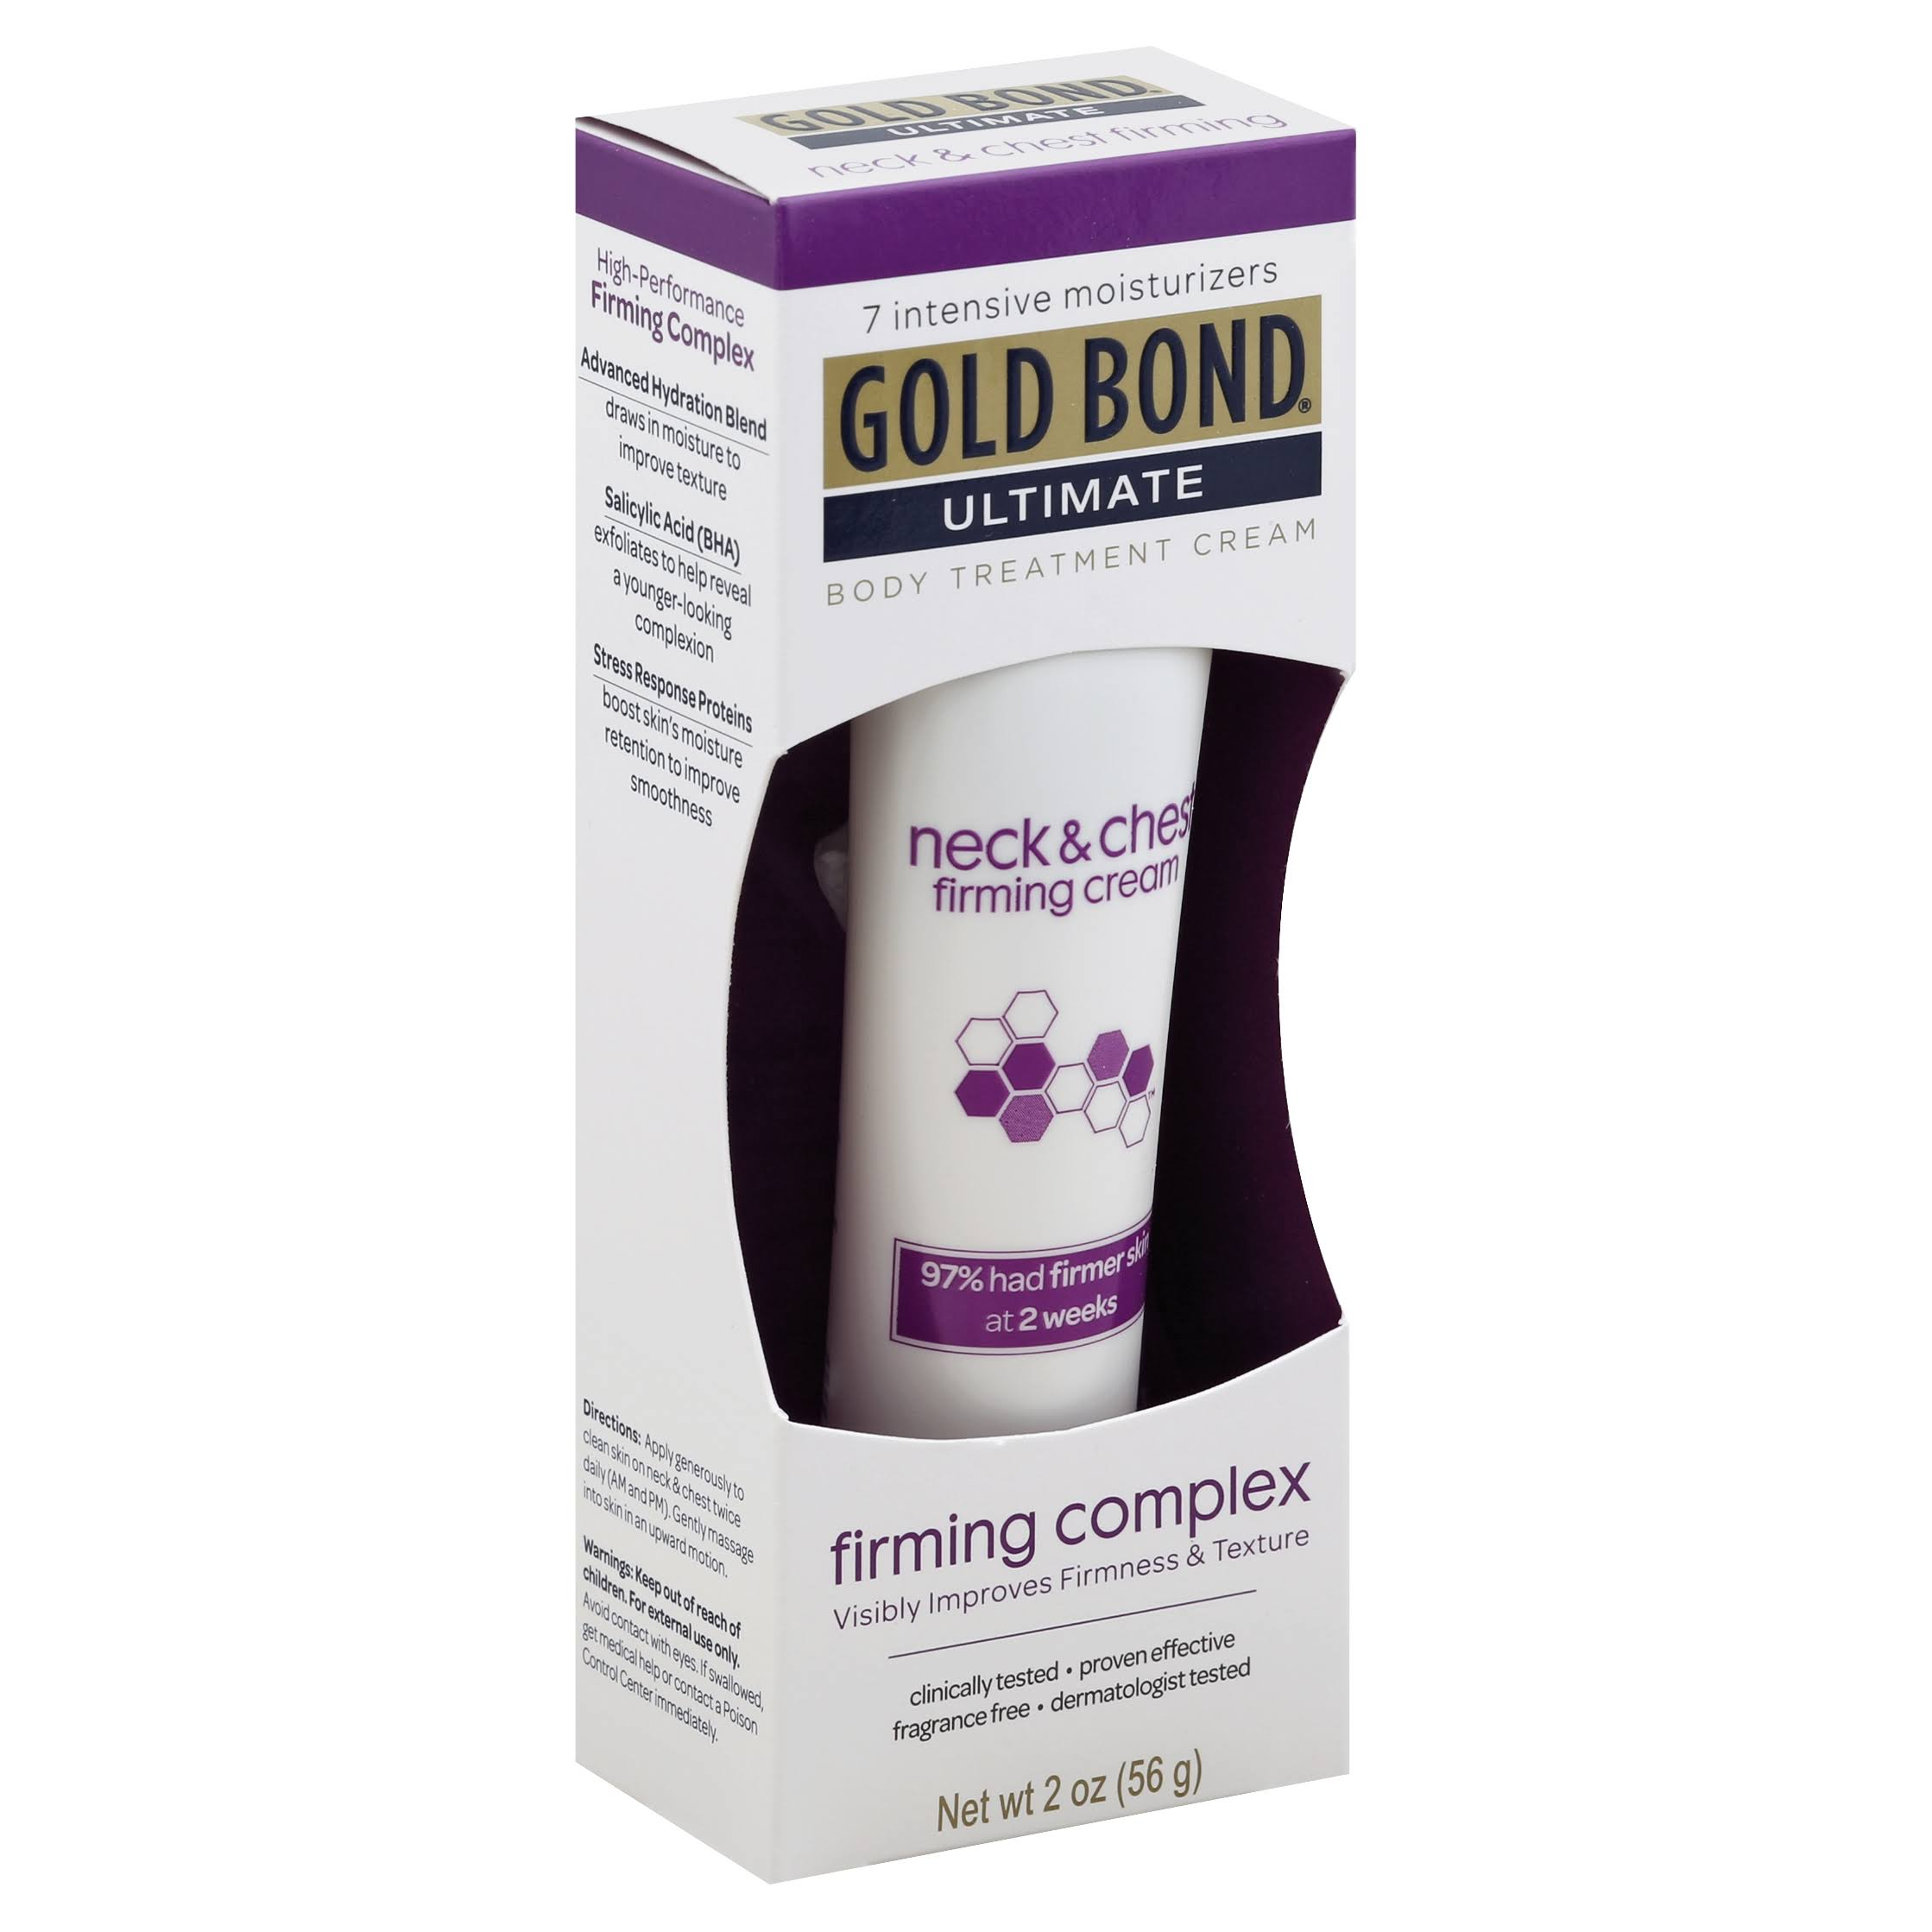 Gold Bond Ultimate Neck and Chest Firming Body Treatment Cream - 2oz